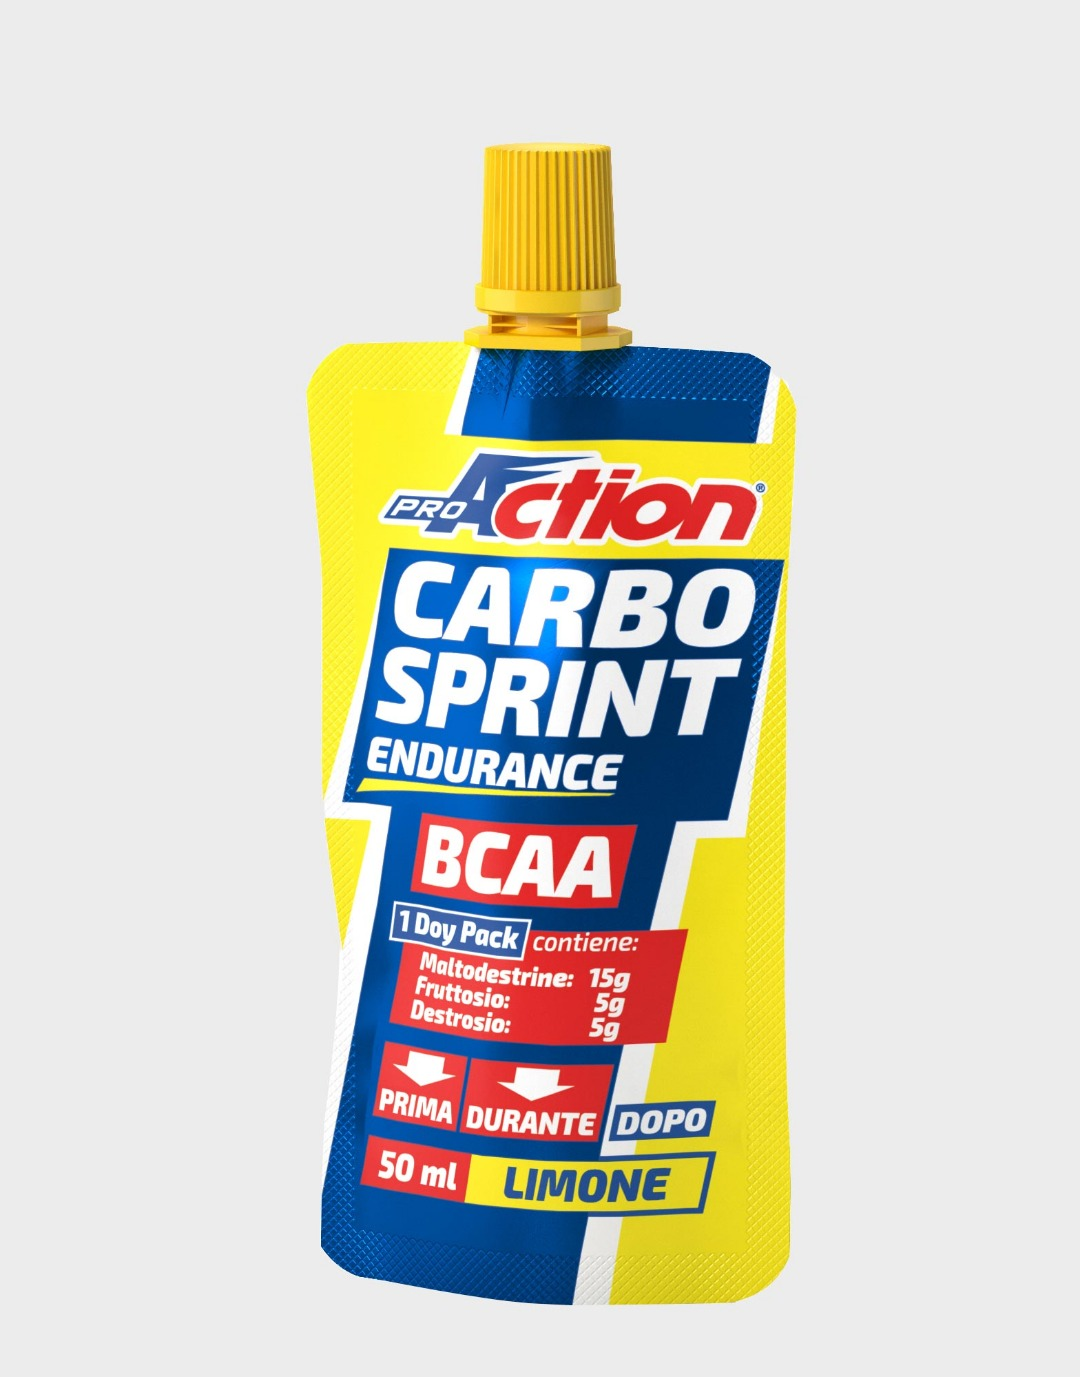 Pro Action Carbo Sprint Endurance BCAA Gel Limone